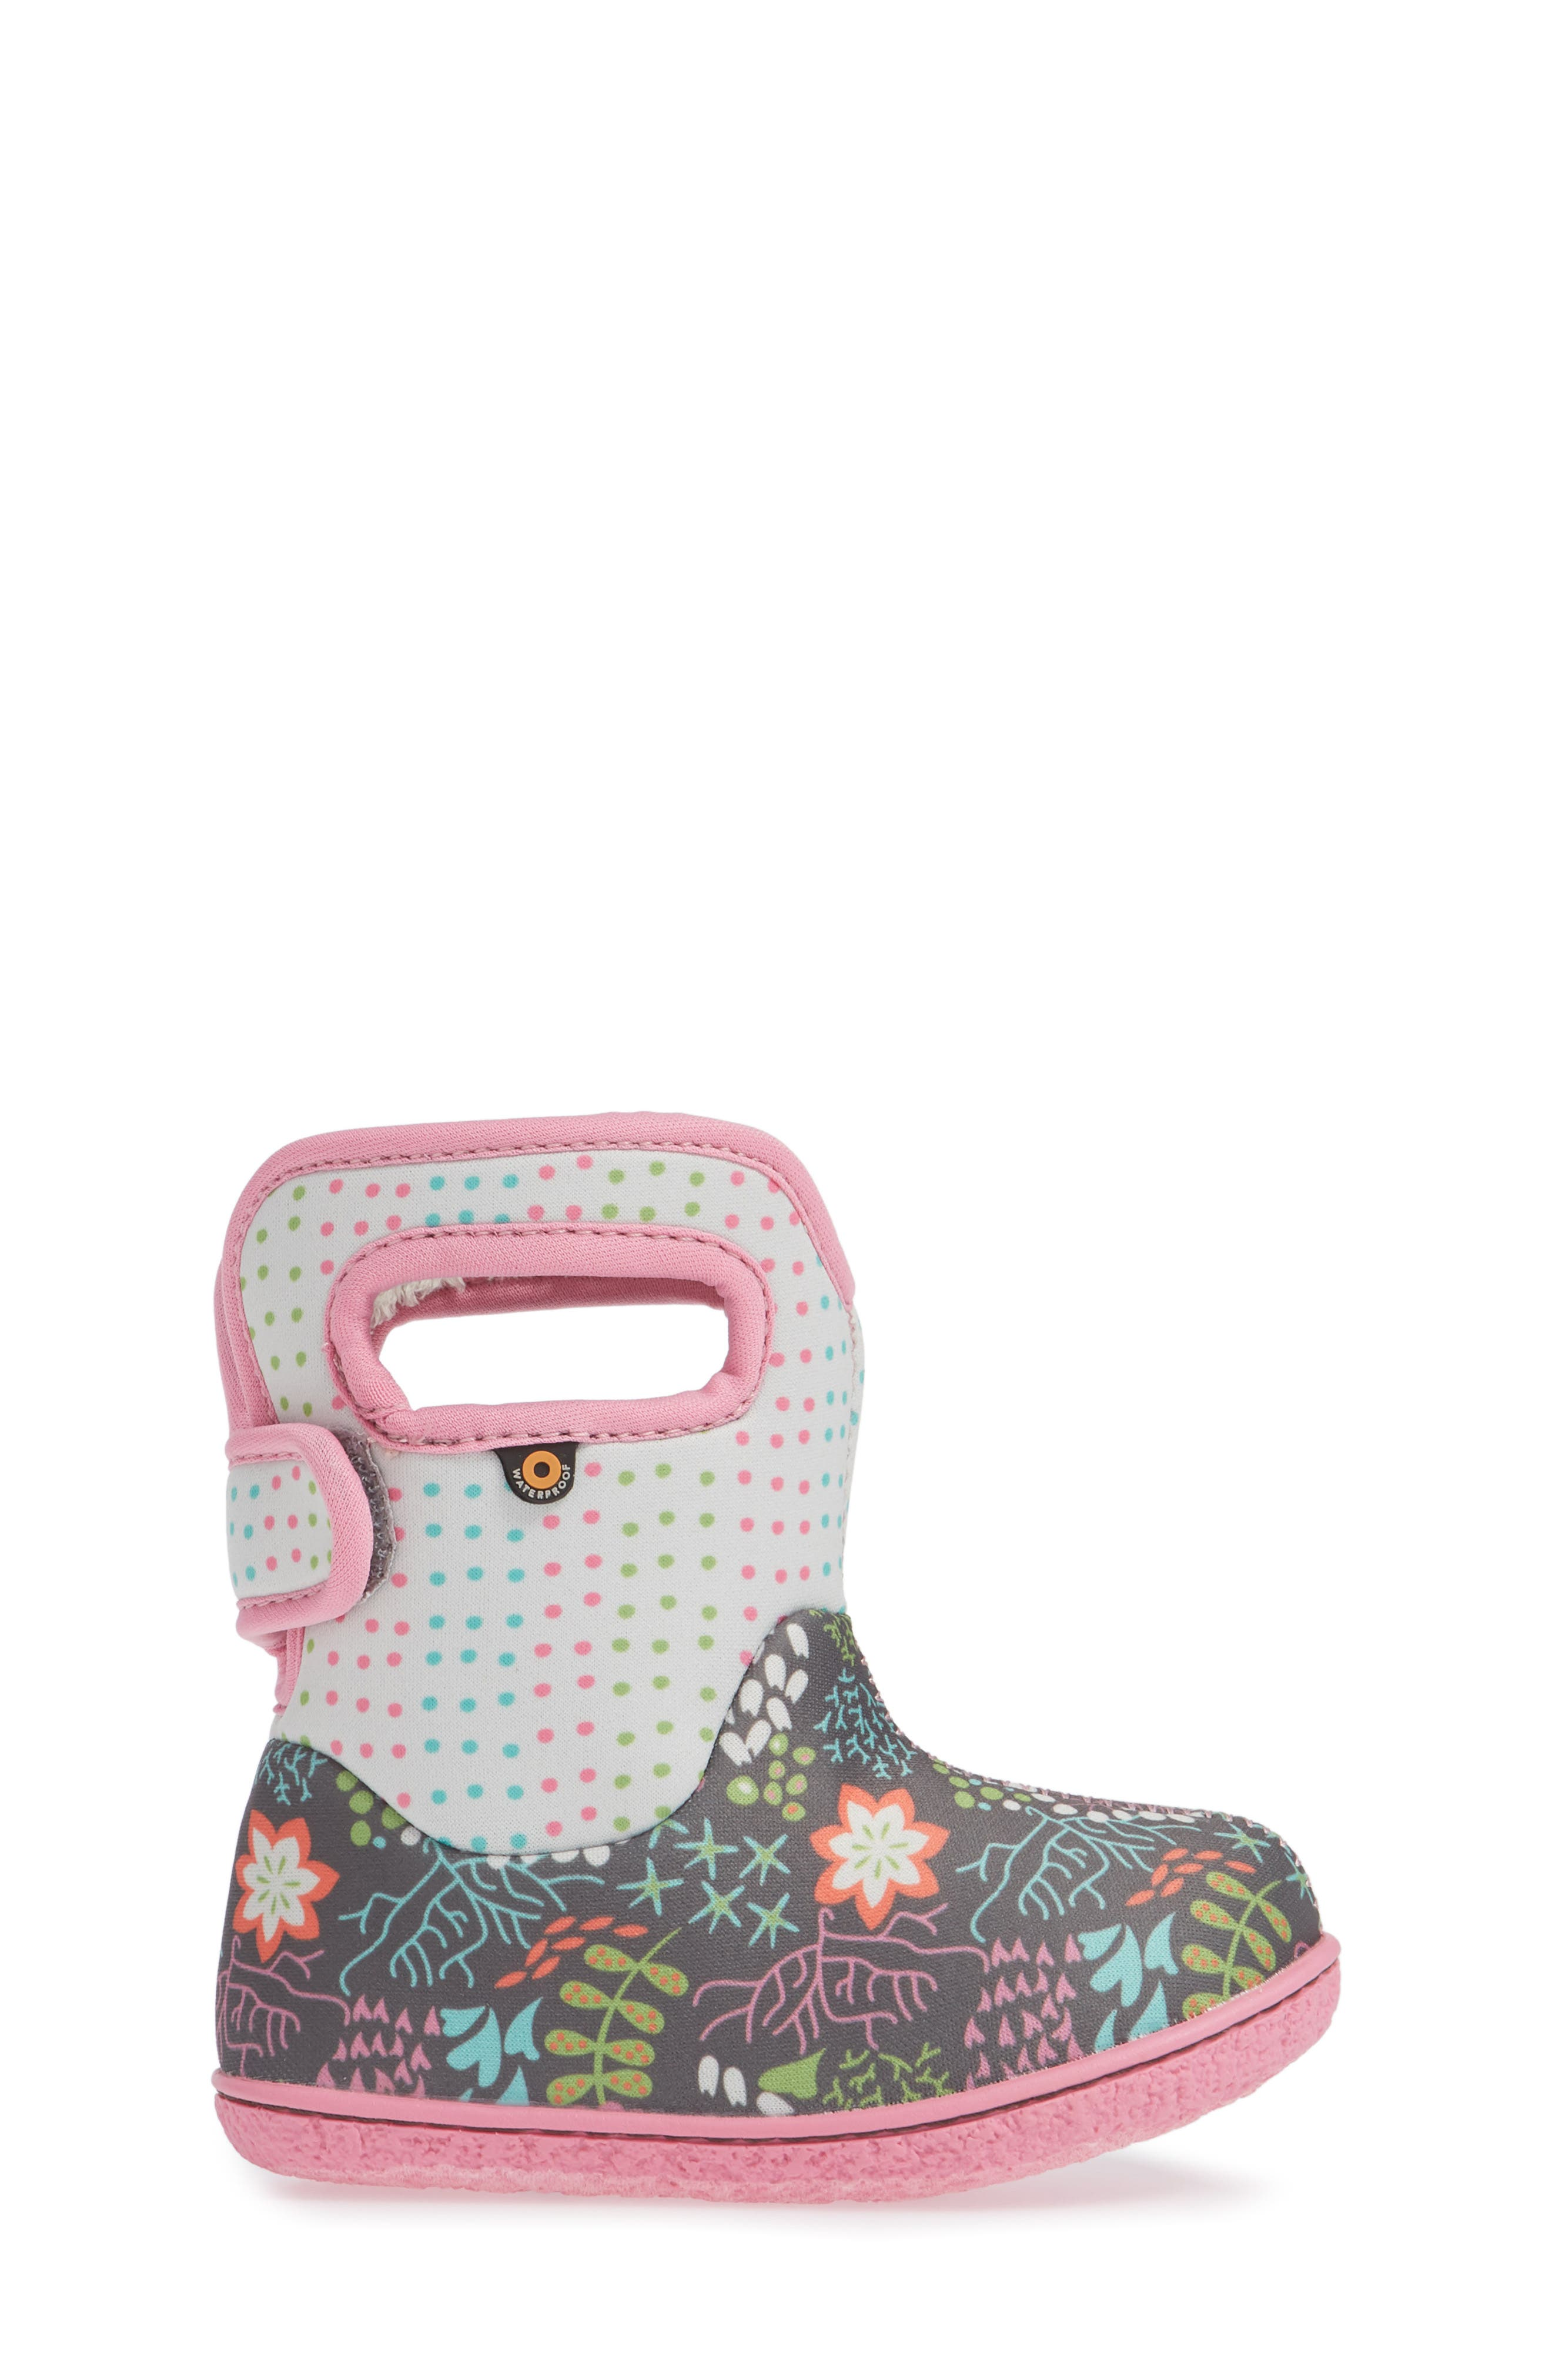 BOGS,                             Baby Bogs New Flower Dot Waterproof Boot,                             Alternate thumbnail 3, color,                             062